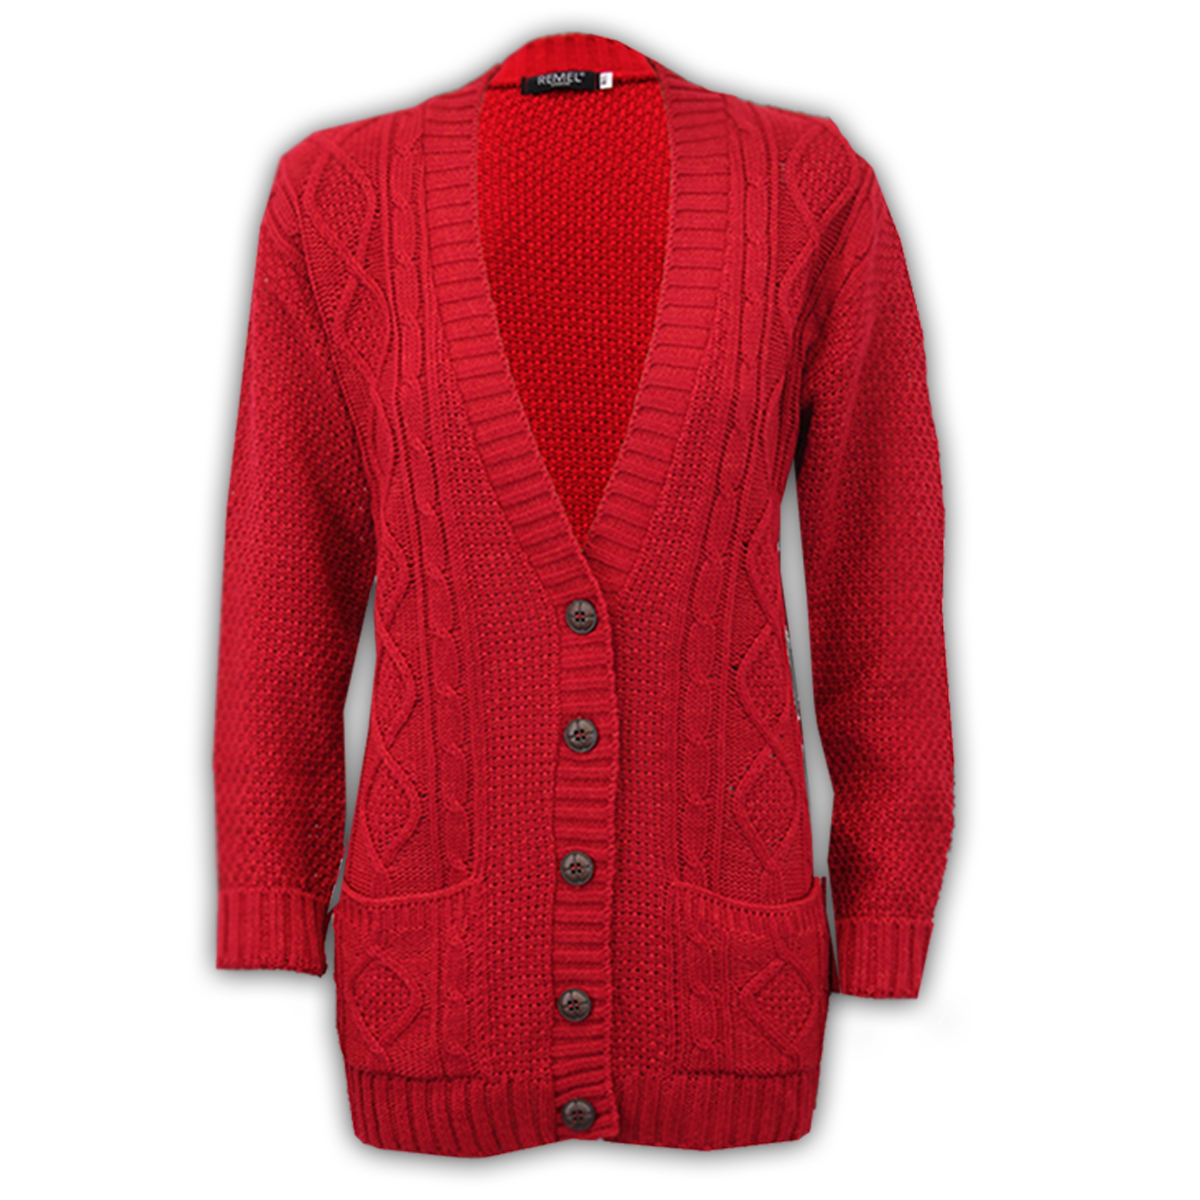 Find great deals on eBay for womens winter cardigans. Shop with confidence.